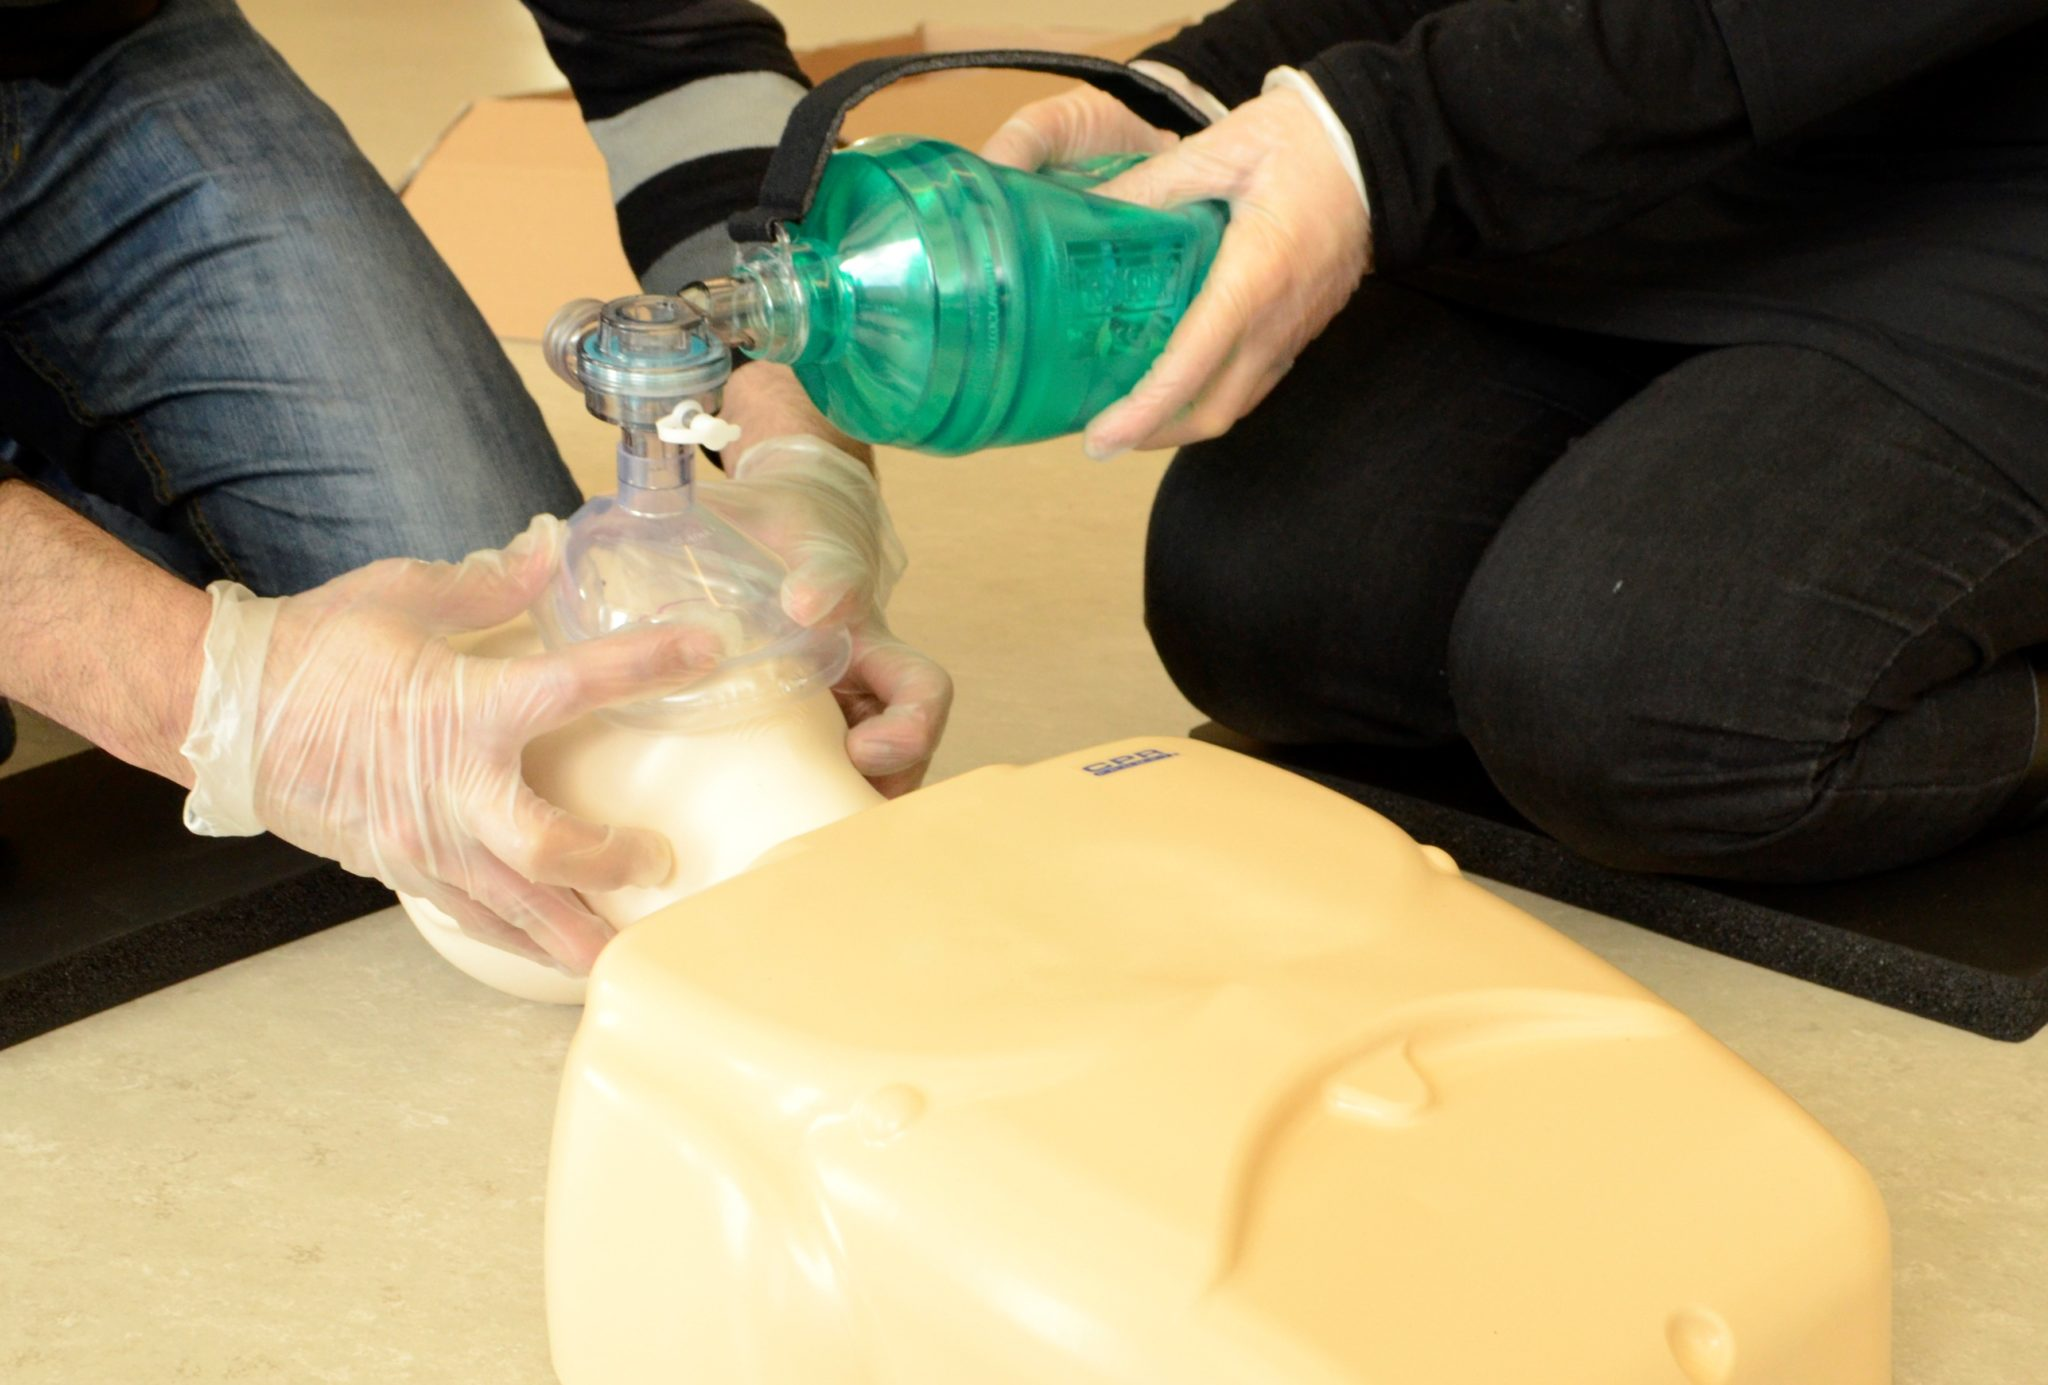 Standard First Aid CPR AED